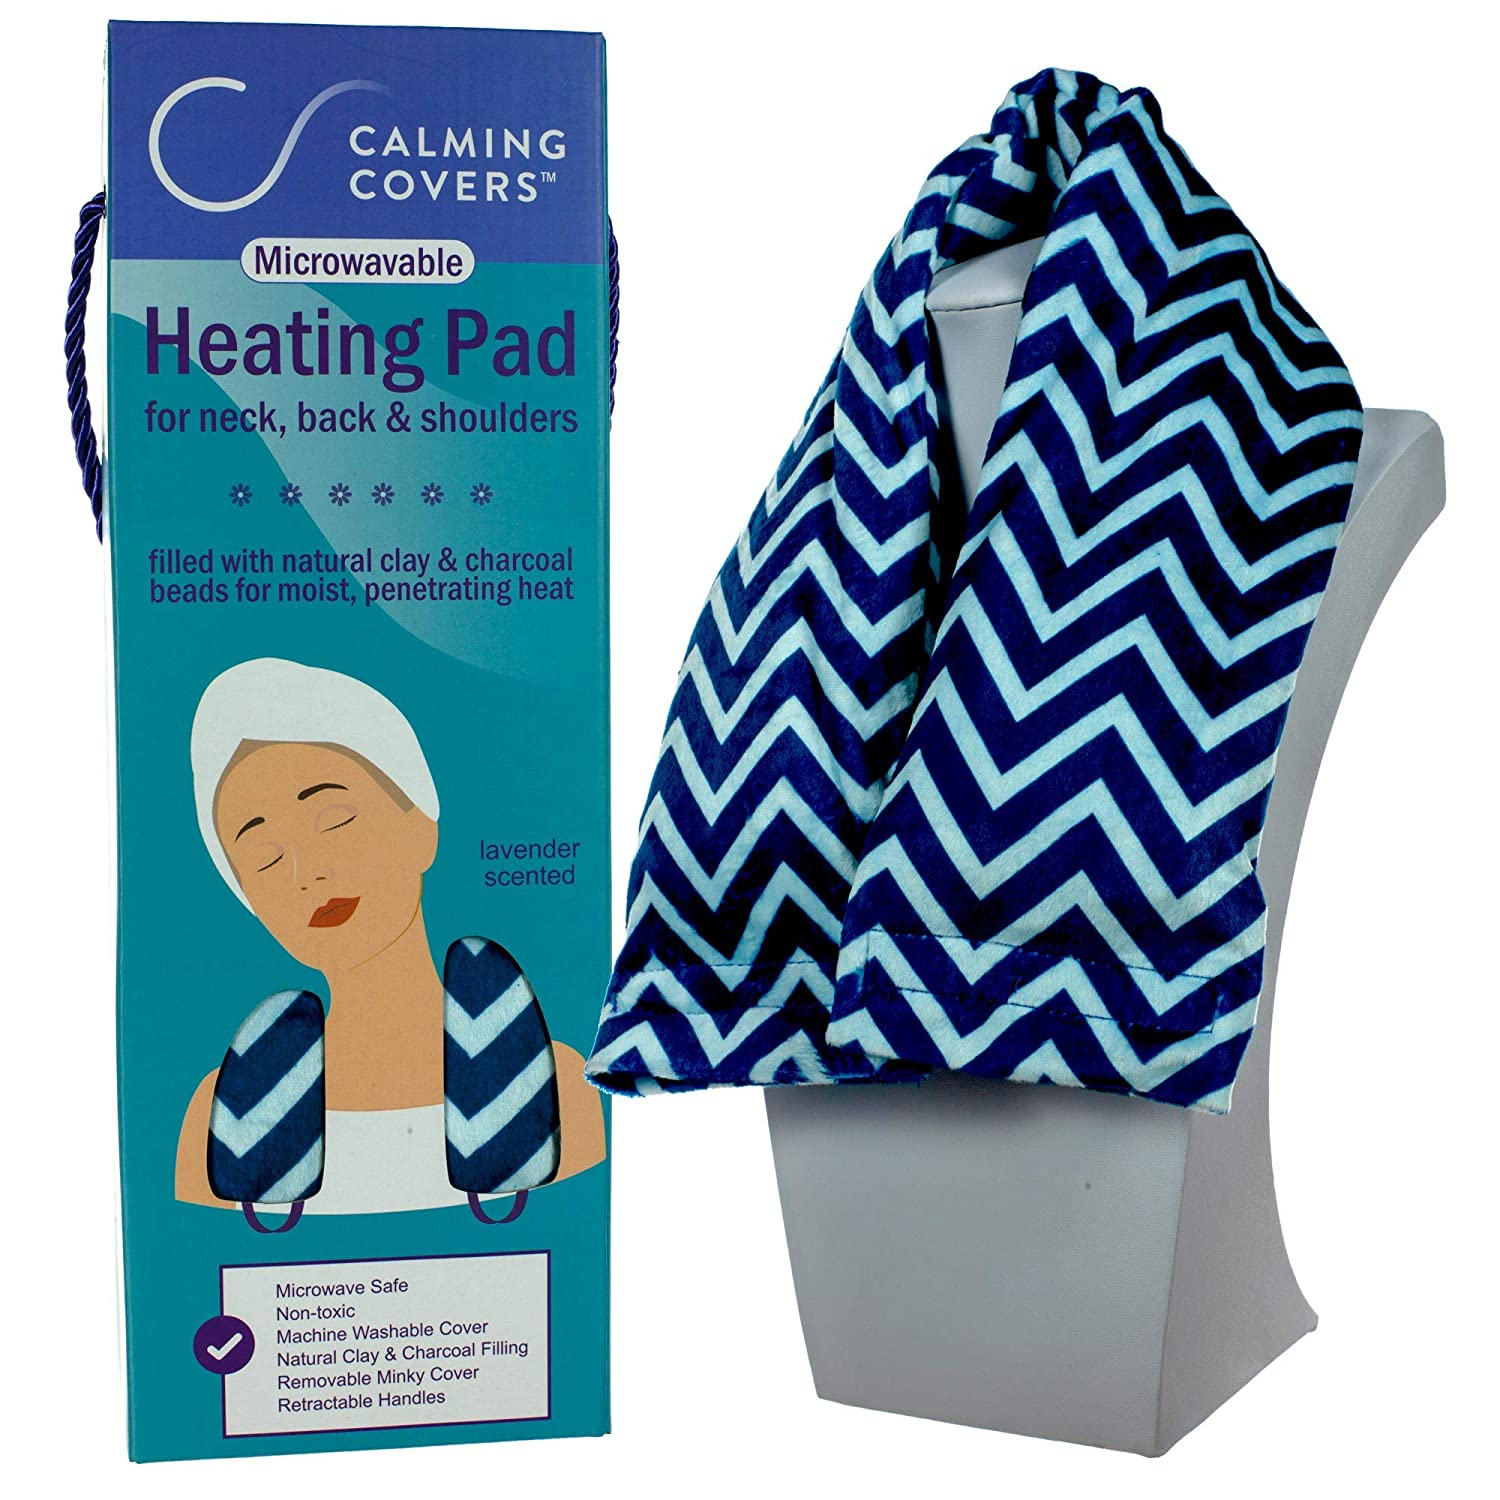 Microwavable Heating Pad Wrap for Neck, Shoulder, and Back Pain | Filled with Clay & Charcoal Beads | Lightly Scented with Lavender | Washable Minky Cover | Blue & White Chevron